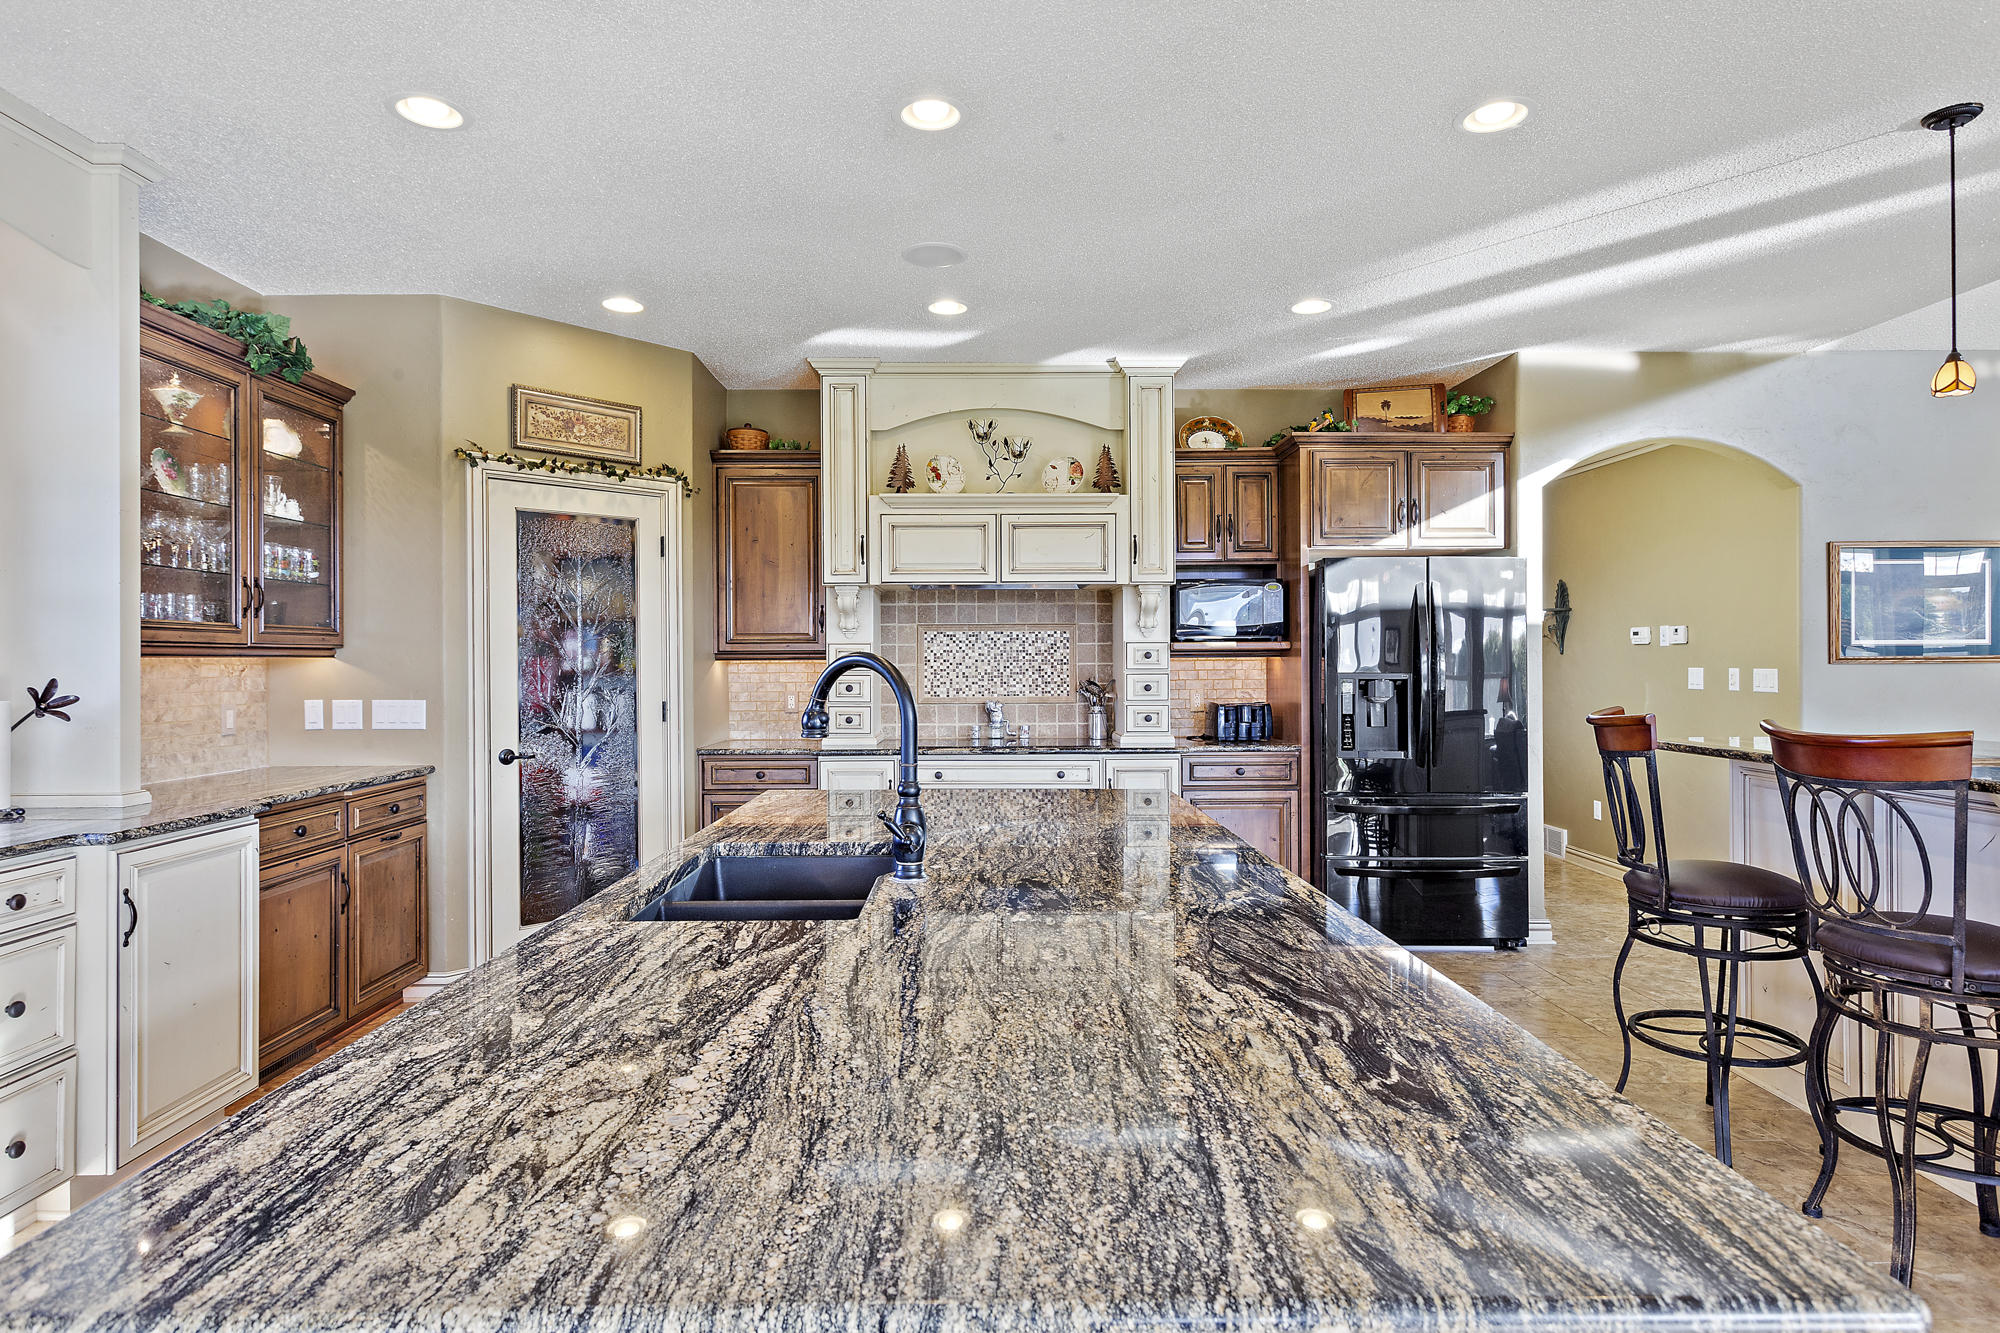 W6414 Sumac Rd, Plymouth, Wisconsin 53073, 5 Bedrooms Bedrooms, ,5 BathroomsBathrooms,Single-family,For Sale,Sumac Rd,1722641